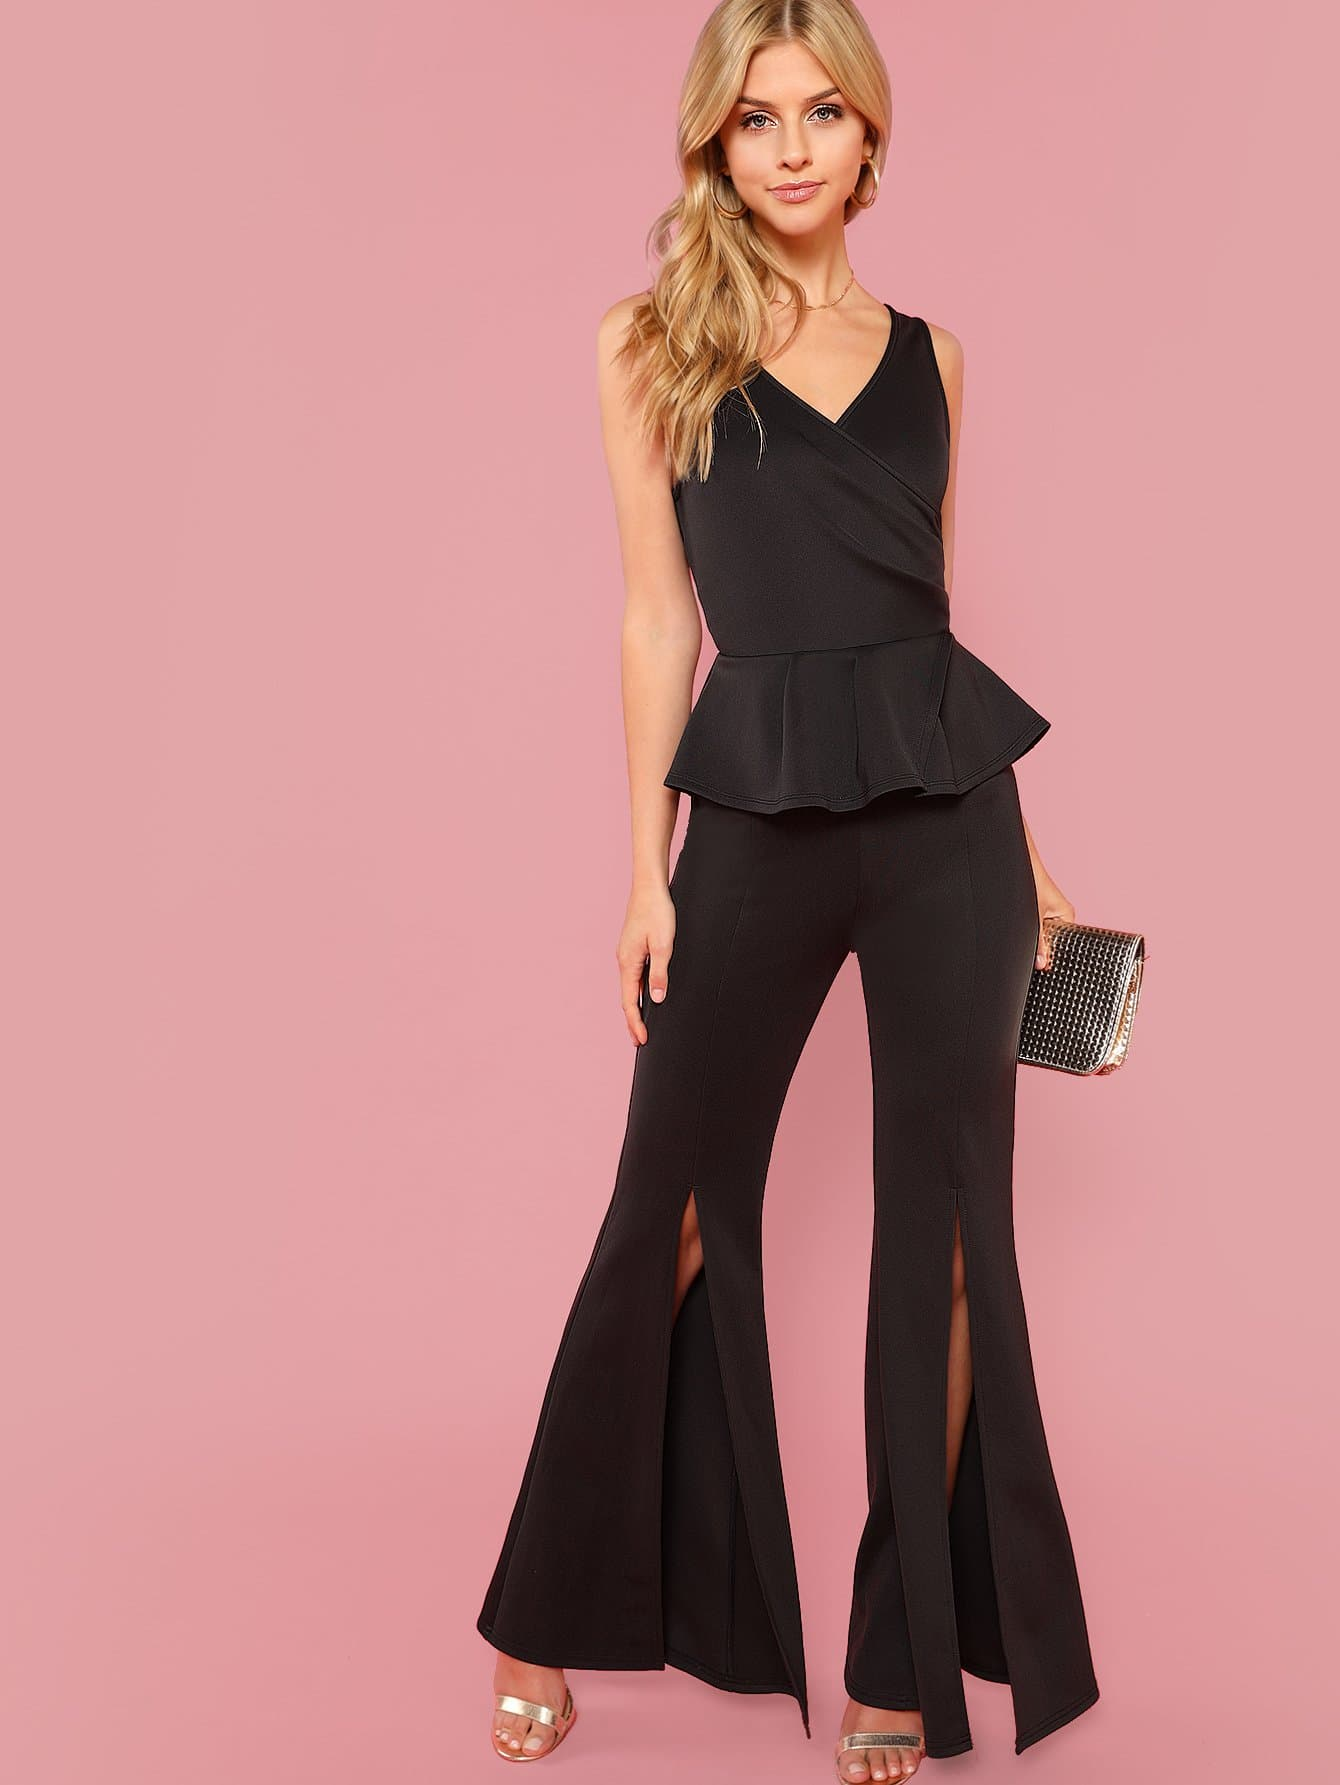 Surplice Neck Ruffle Trim Slit Flare Leg Jumpsuit choker neck embroidered ruffle trim jumpsuit